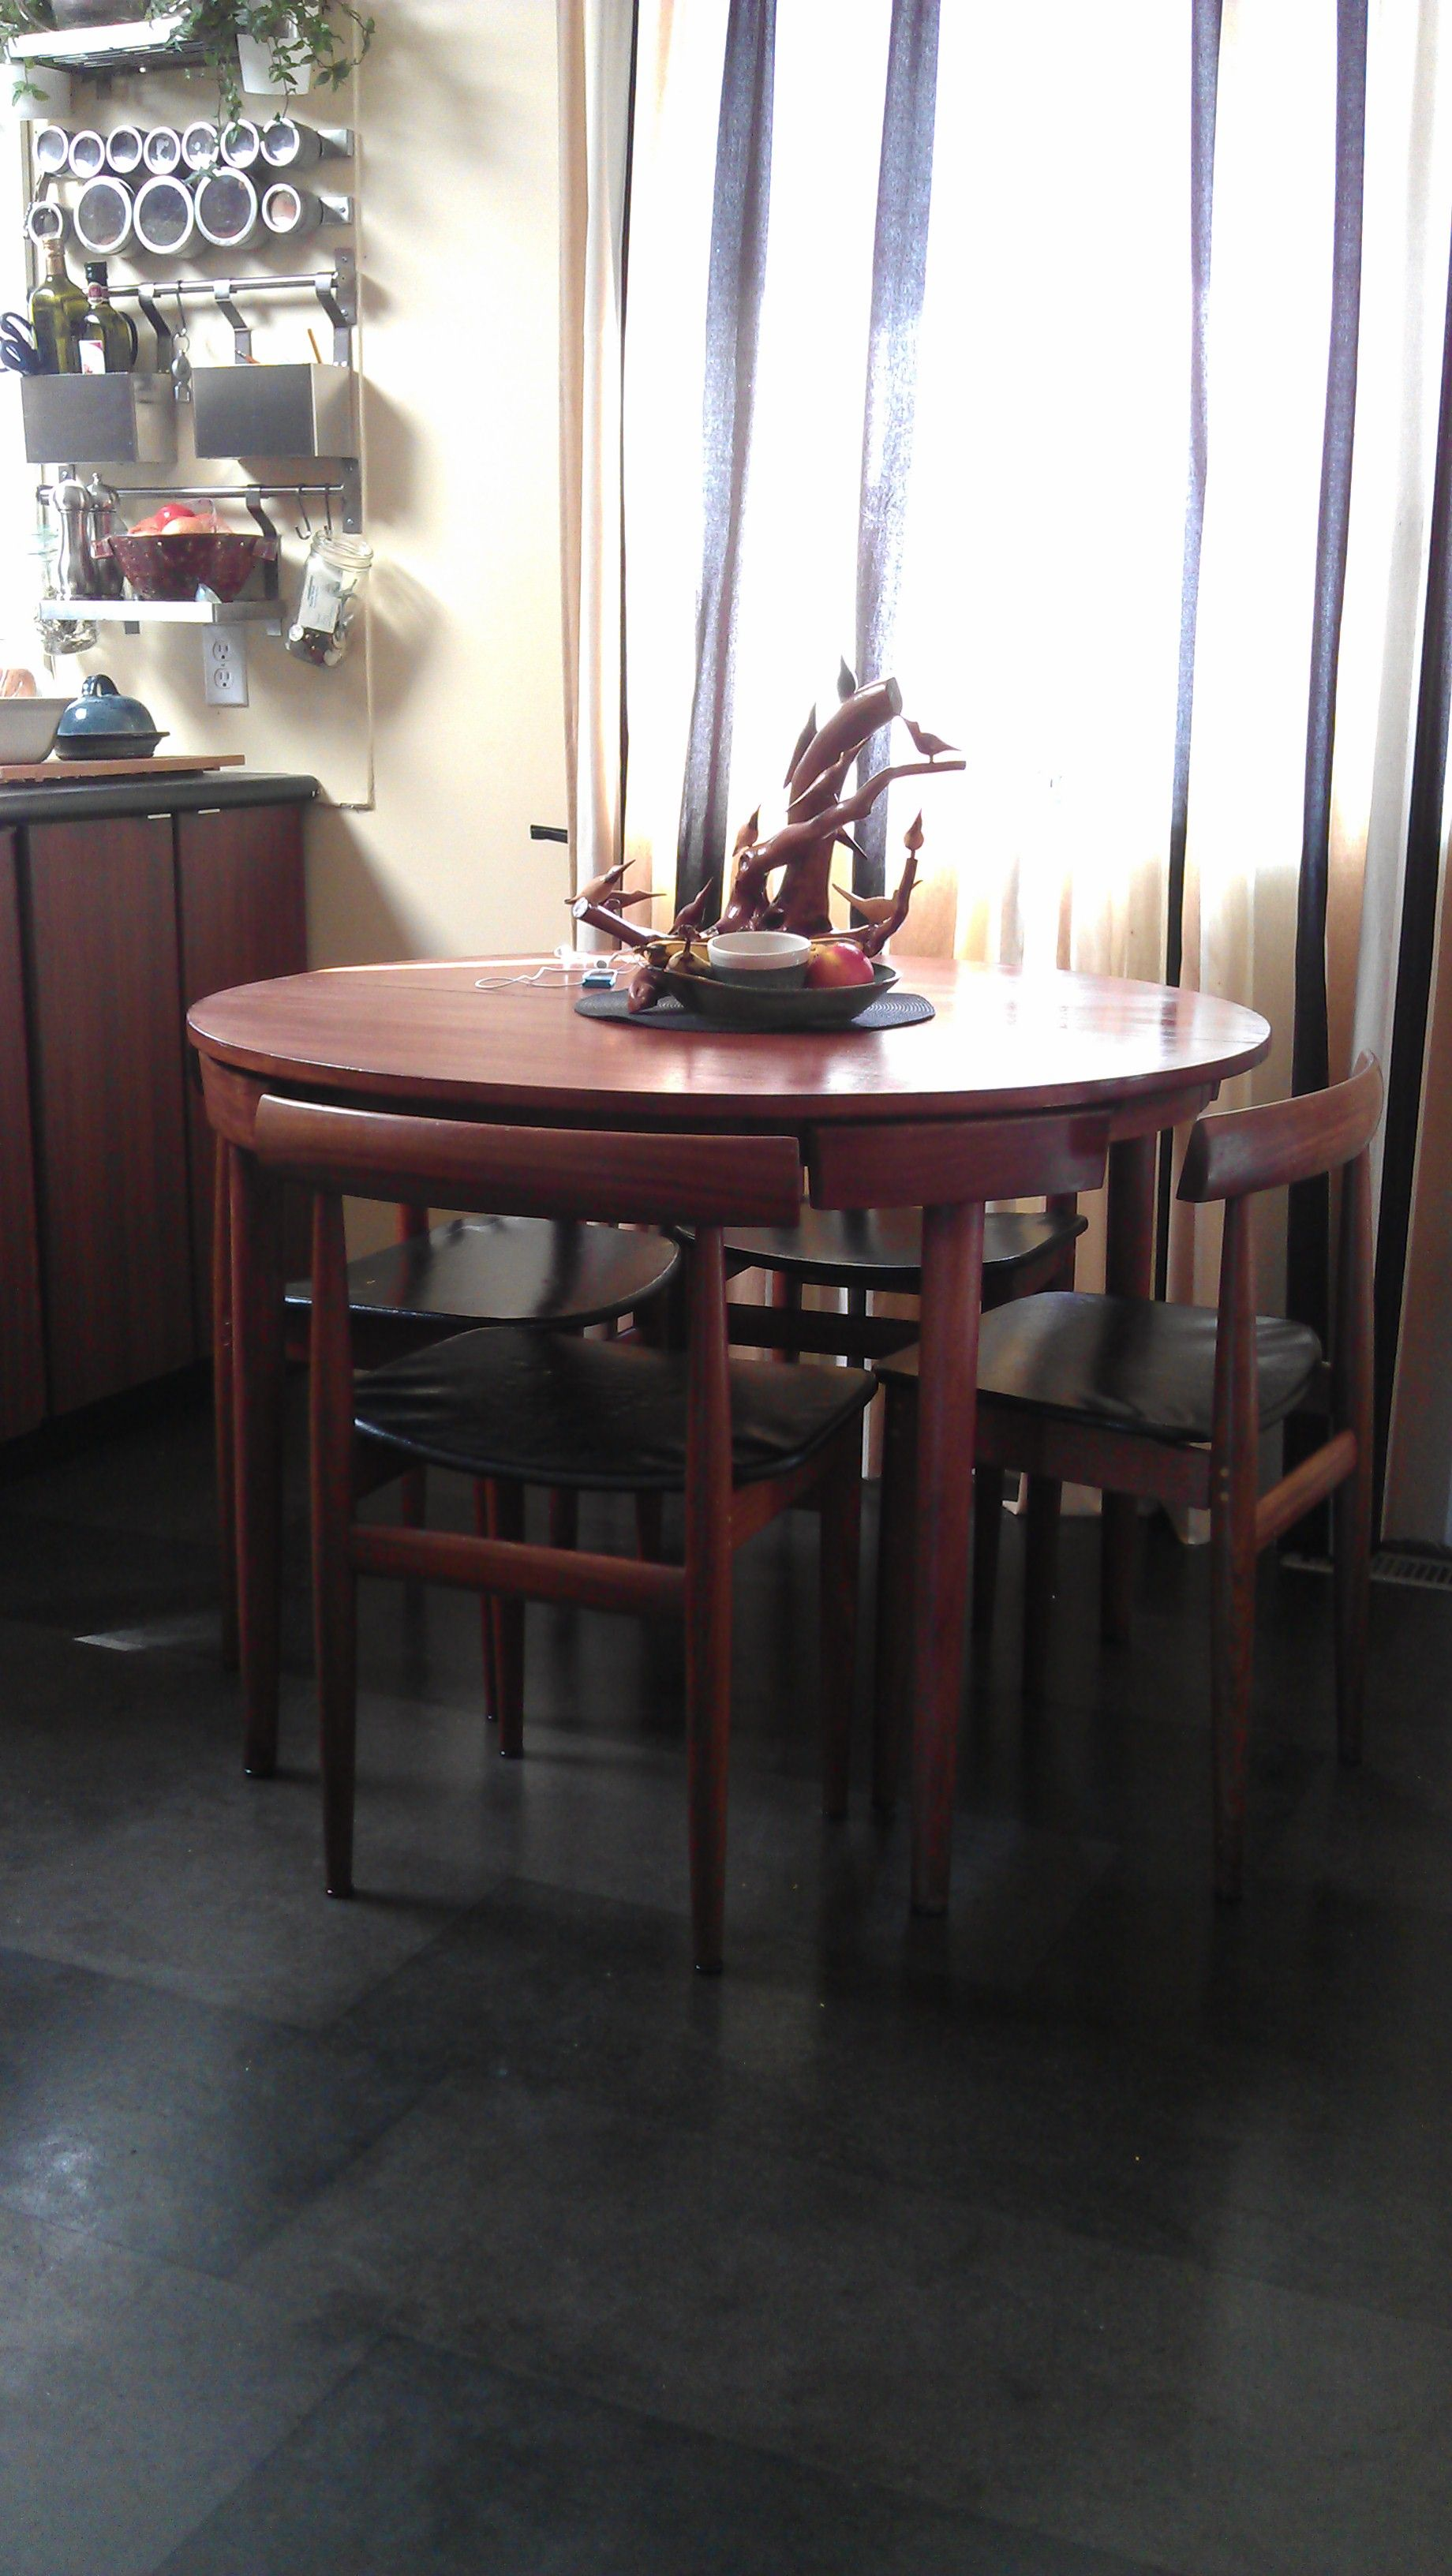 my amazing find: Hans Olsen/Frem Rojle table and chairs, paid $20 ...